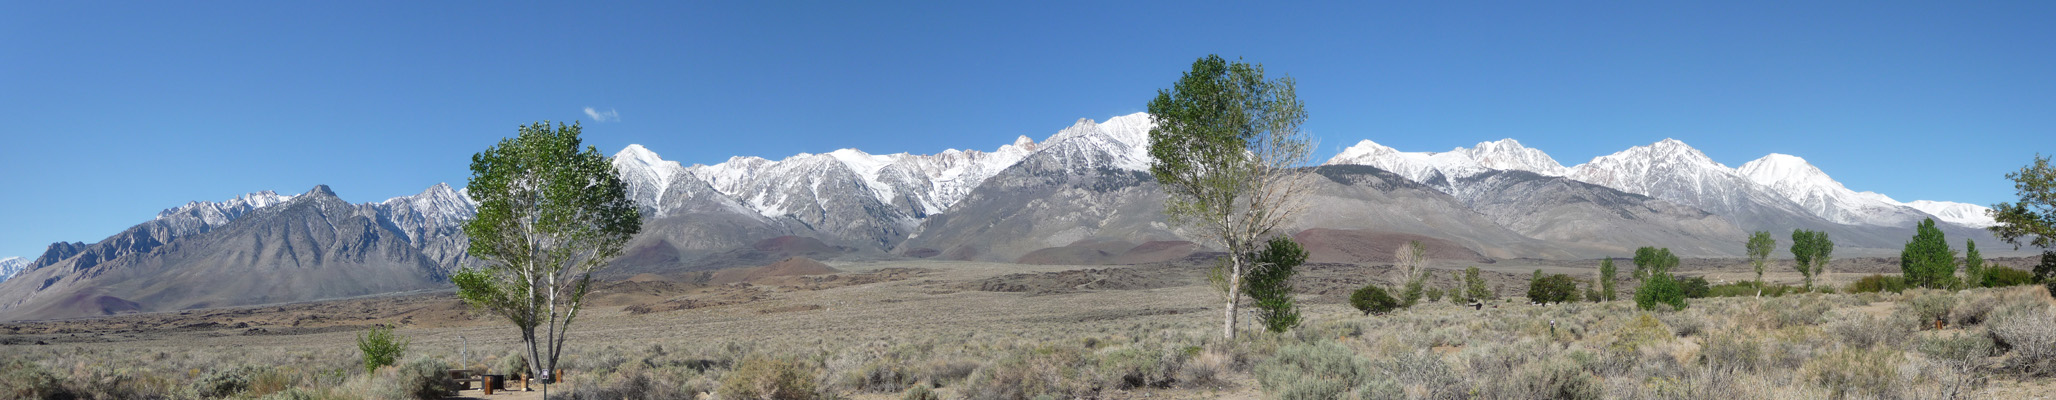 Fresh snow on Sierras from Goodale Creek Campground CA